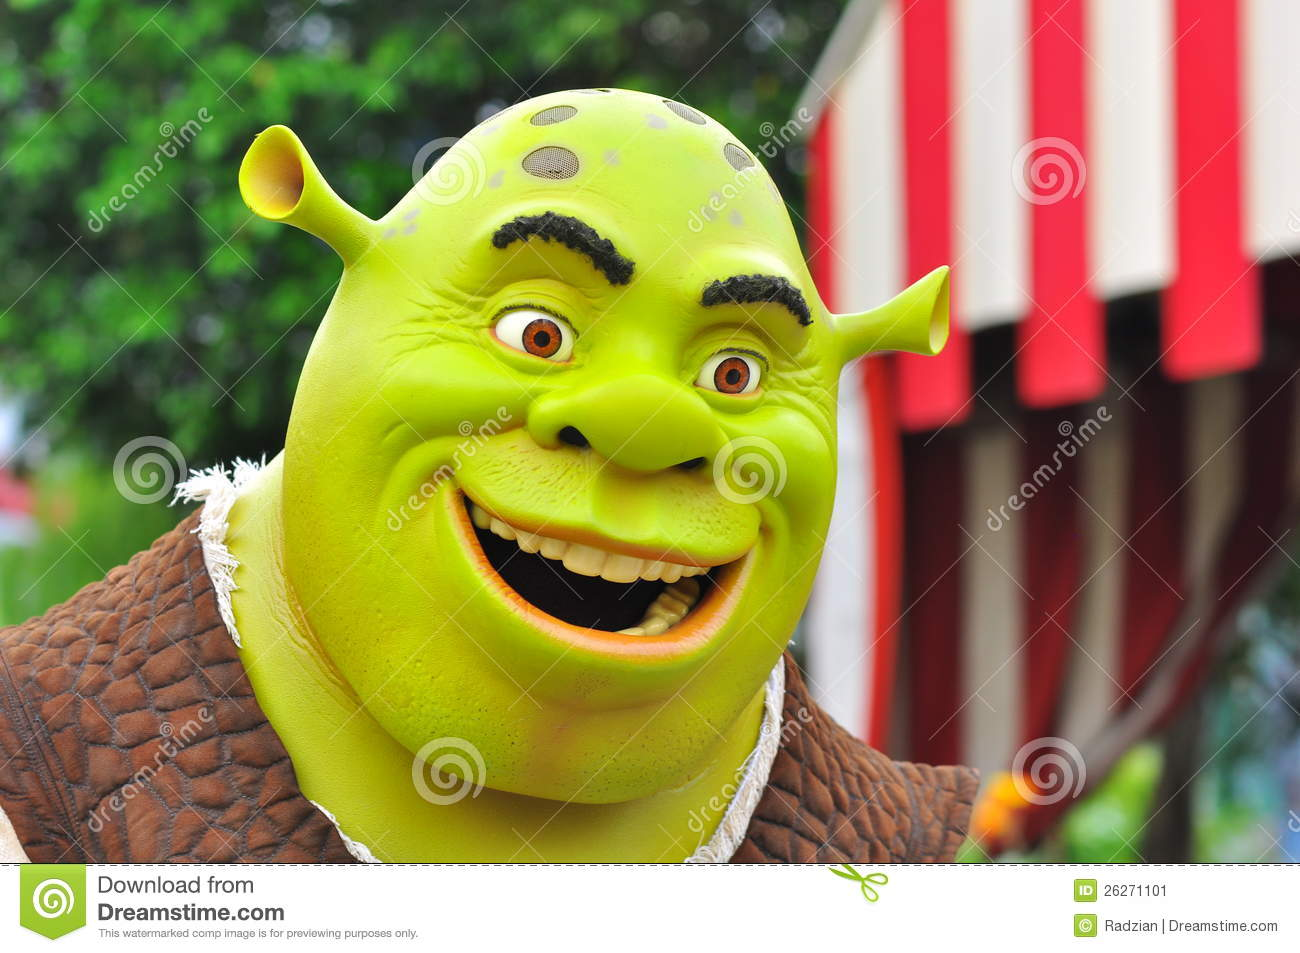 Shrek 2 Cartoon Characters : Shrek cartoon character editorial photo image of